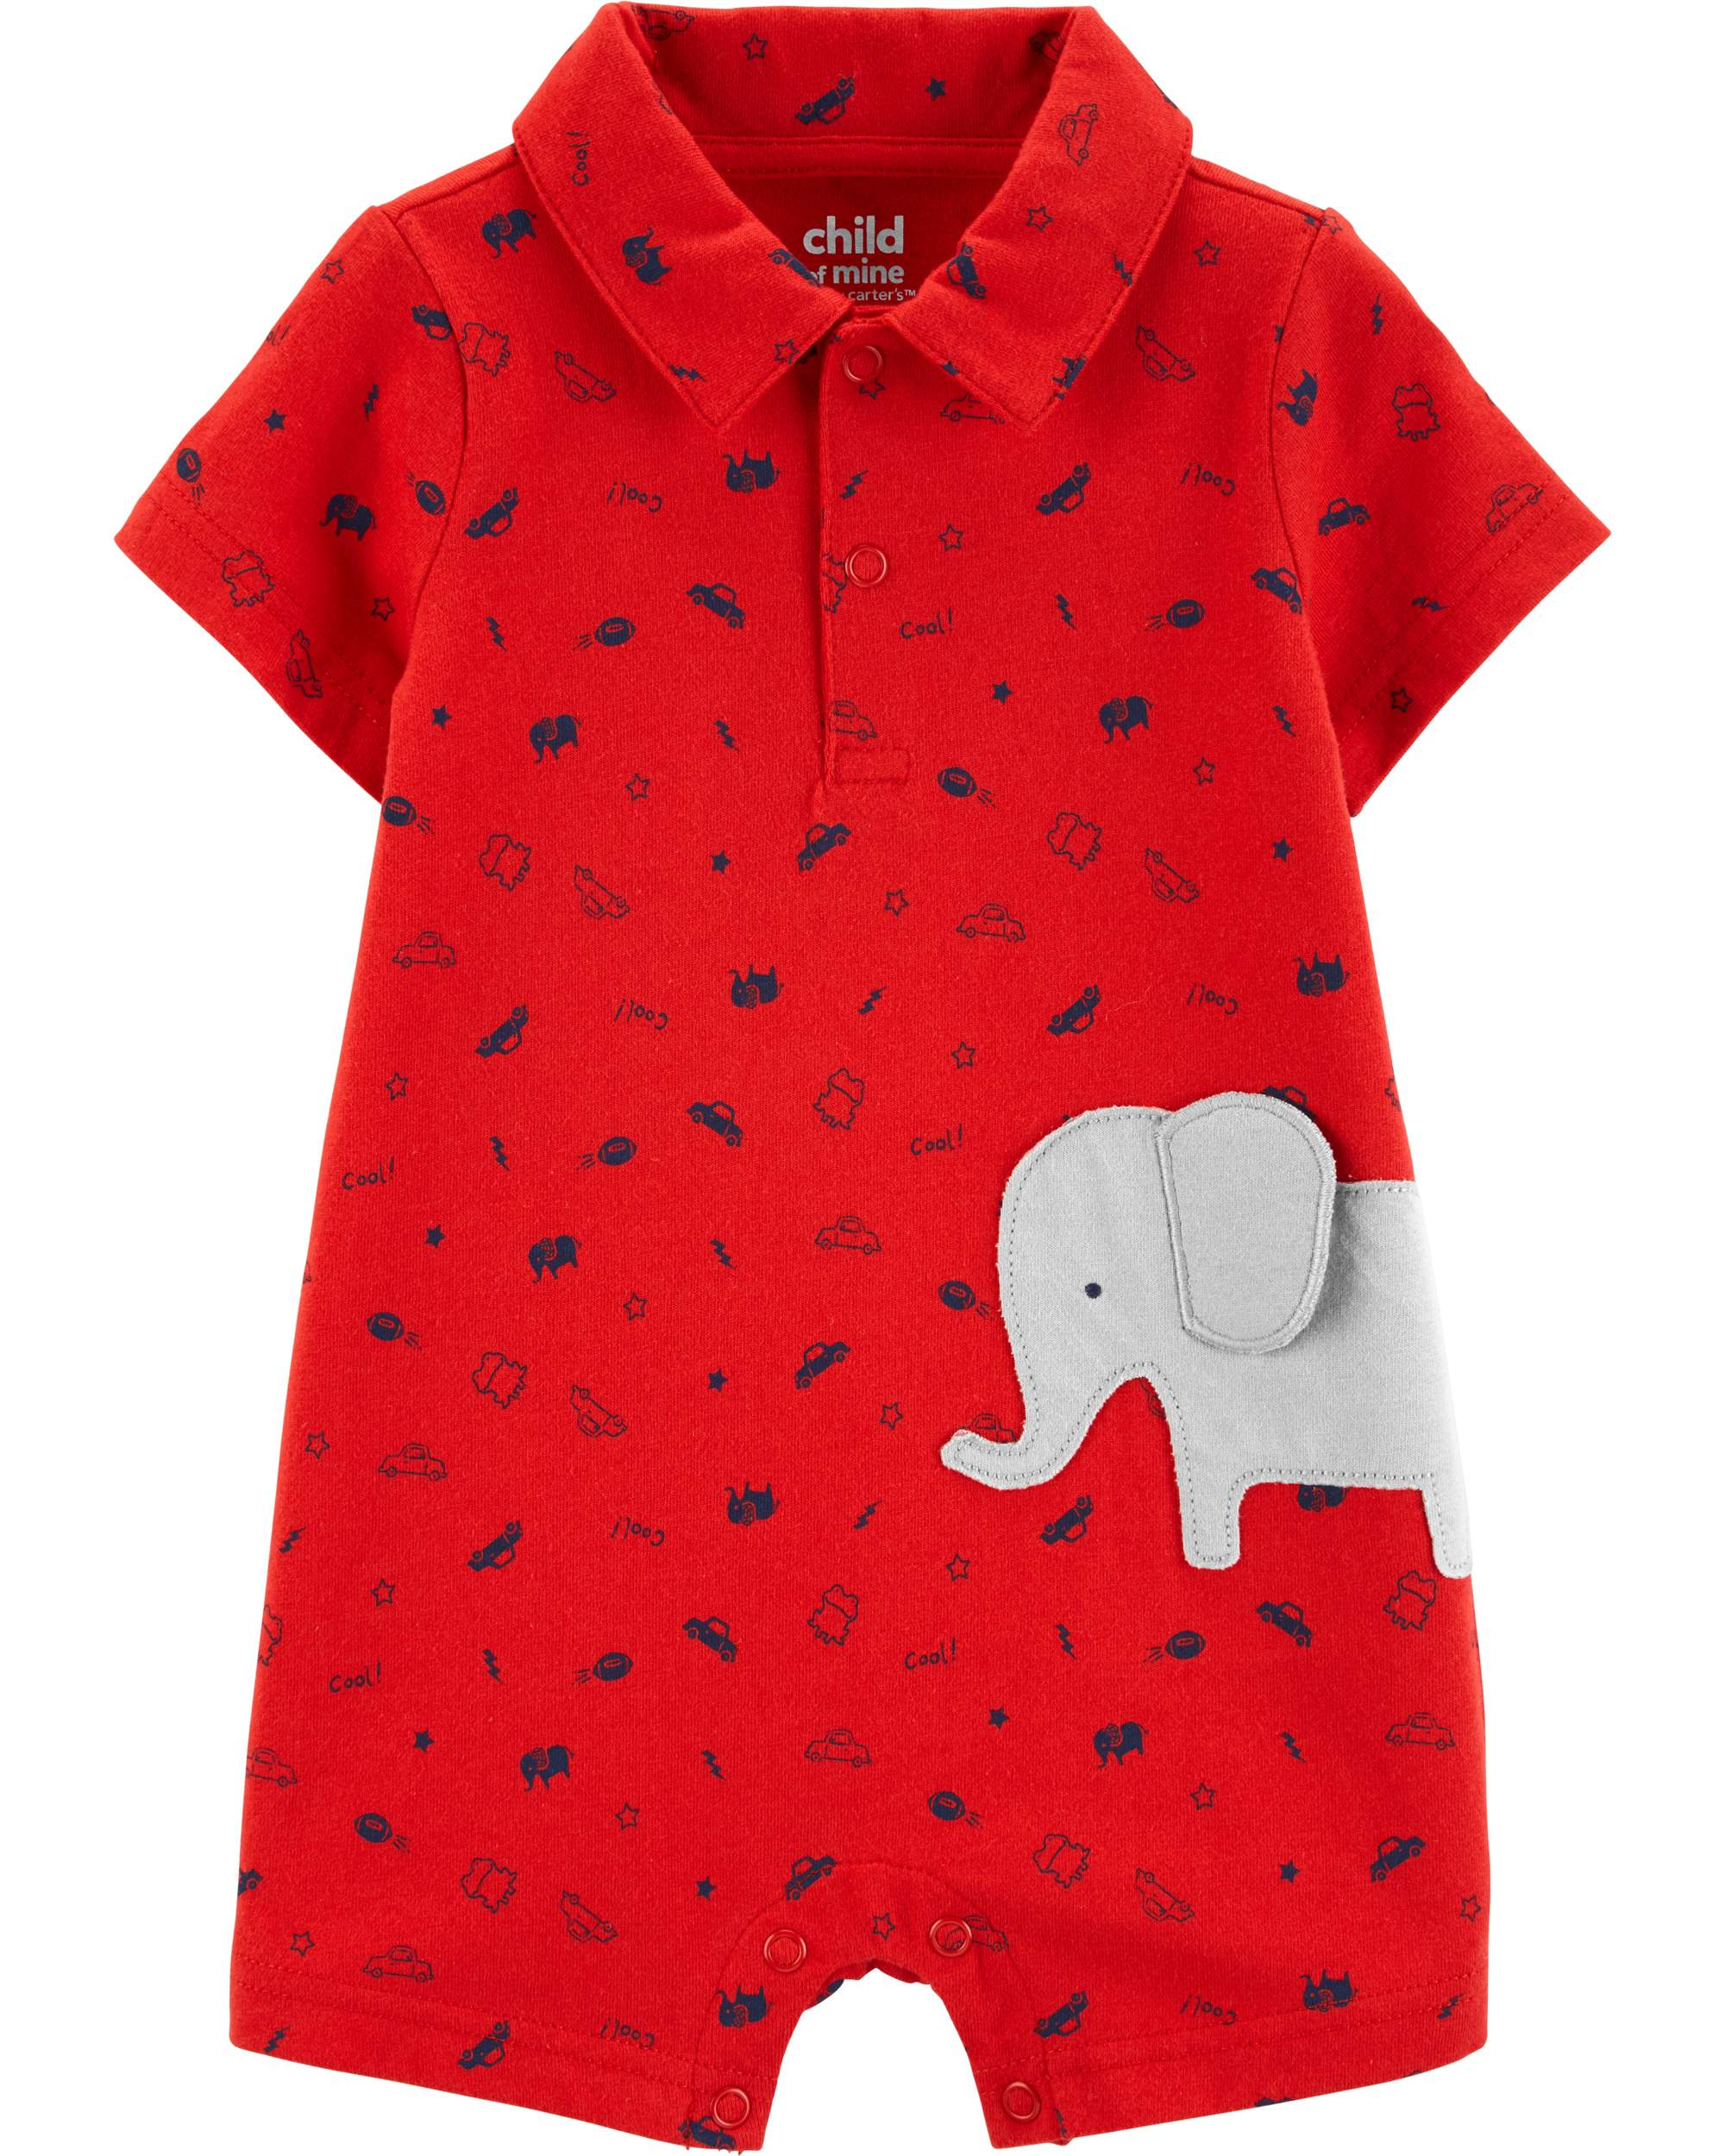 007d93fe71d3 Child of Mine by Carter s - Short Sleeve Footless Outfit